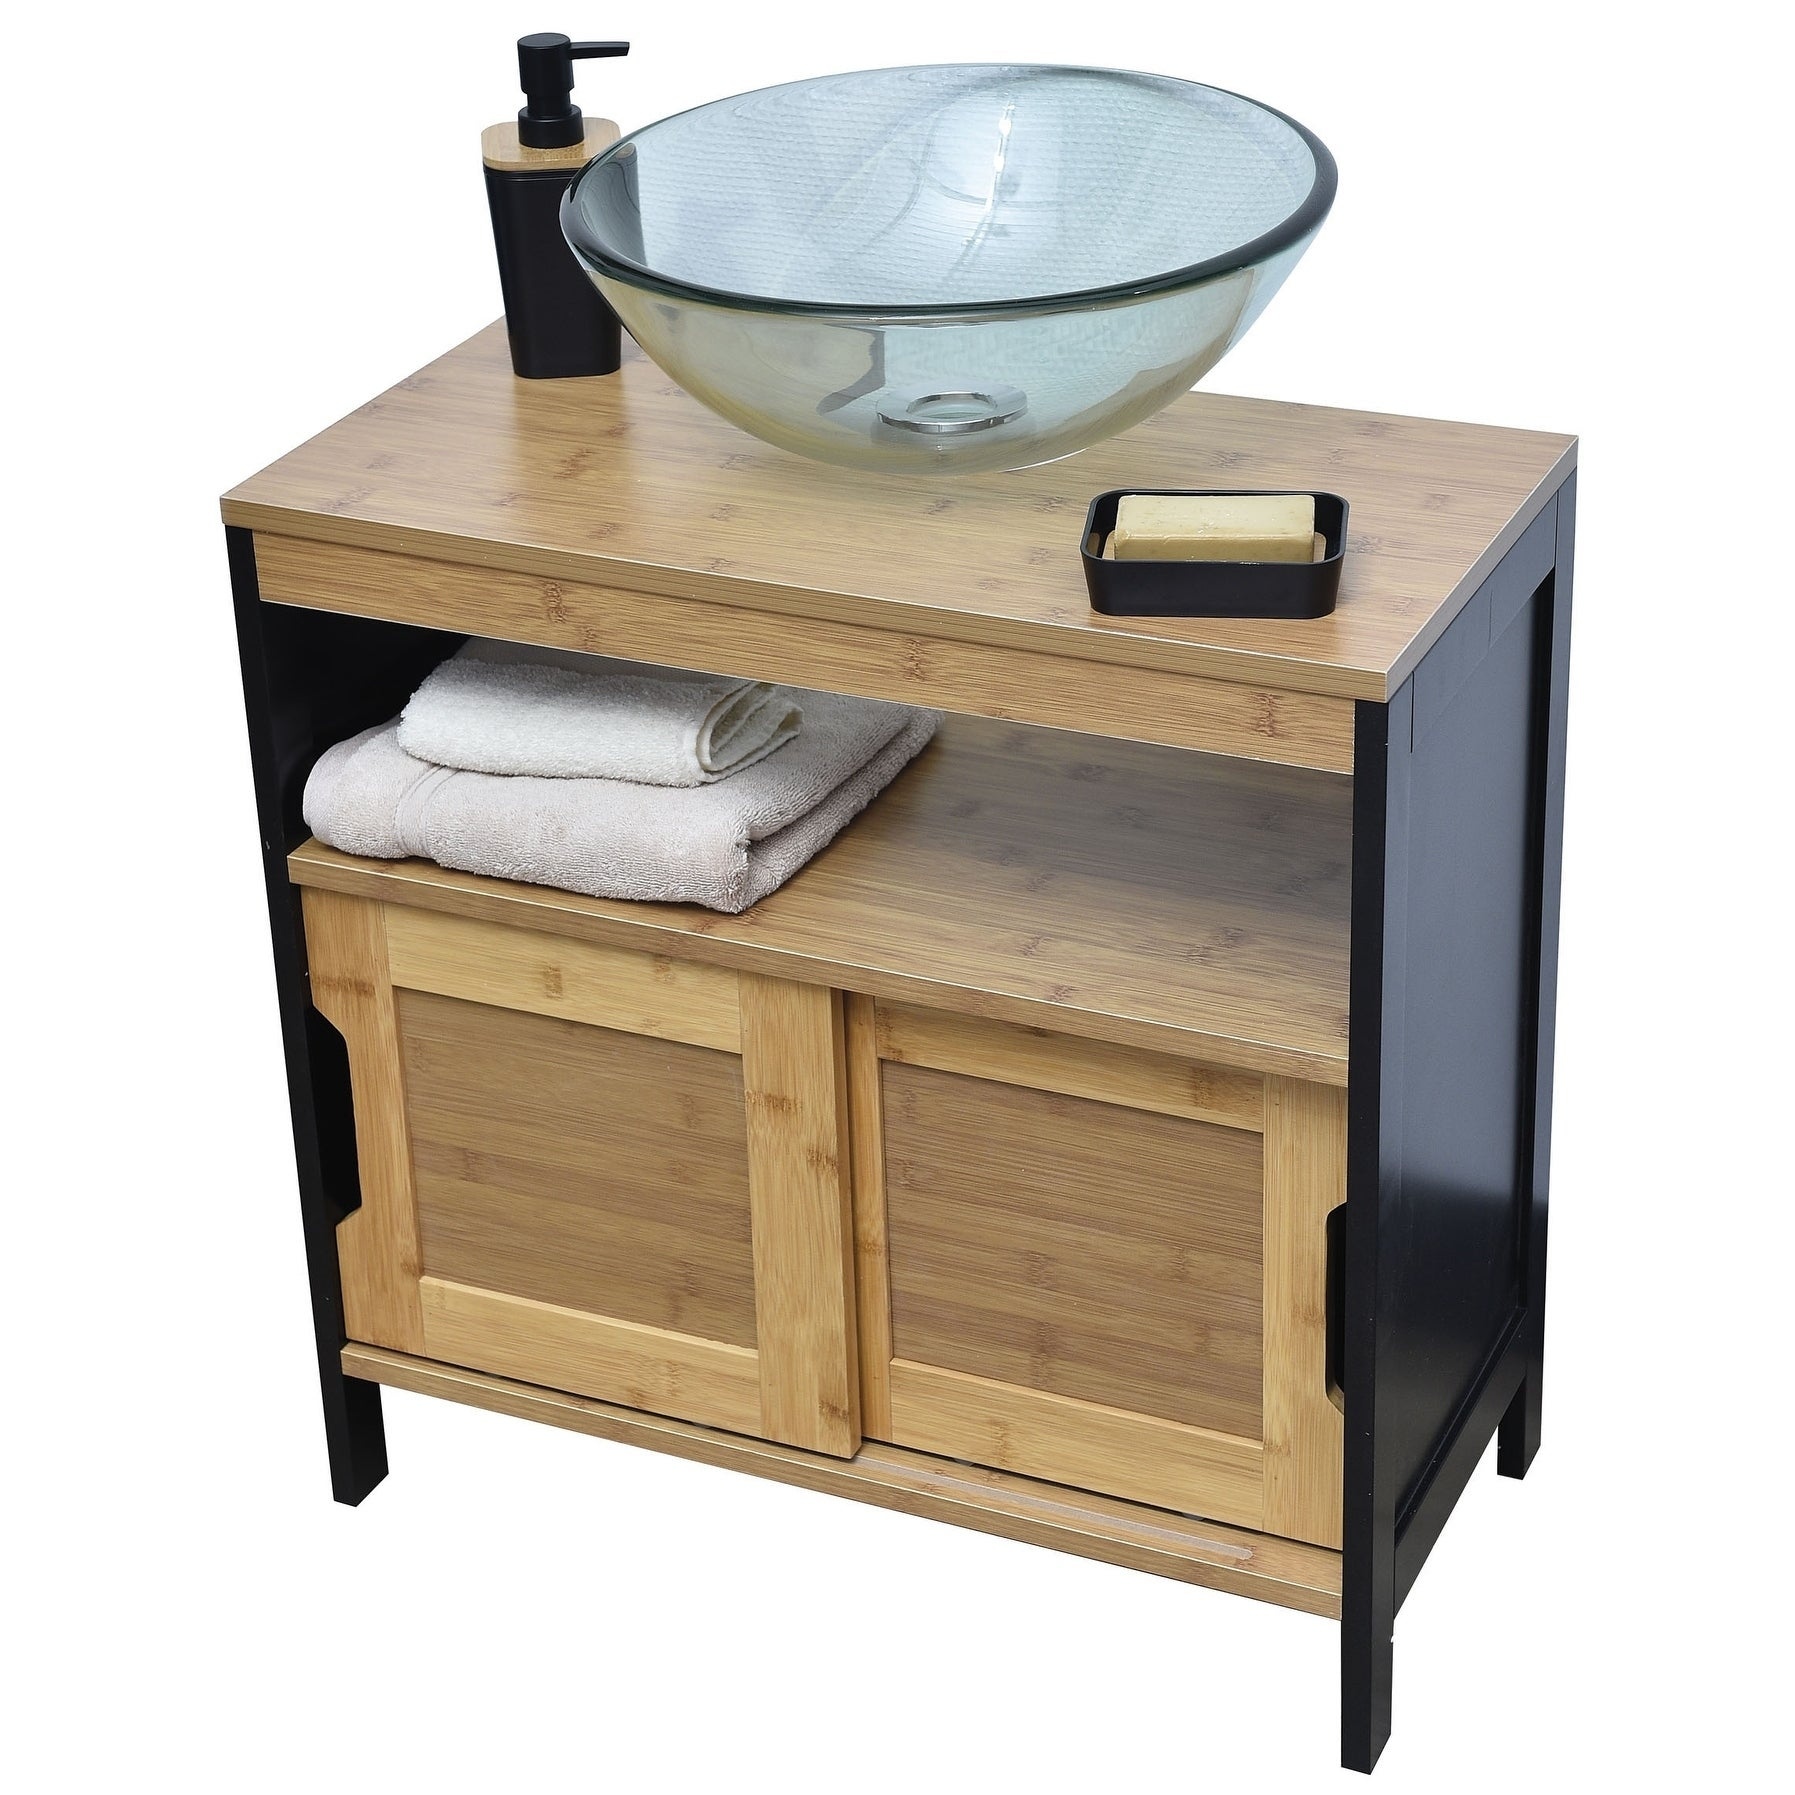 Shop Evideco Non Pedestal Under Sink Storage Vanity Cabinet Phuket Bamboo And Black Overstock 20586136,Rudolph The Red Nosed Reindeer The Movie Villains